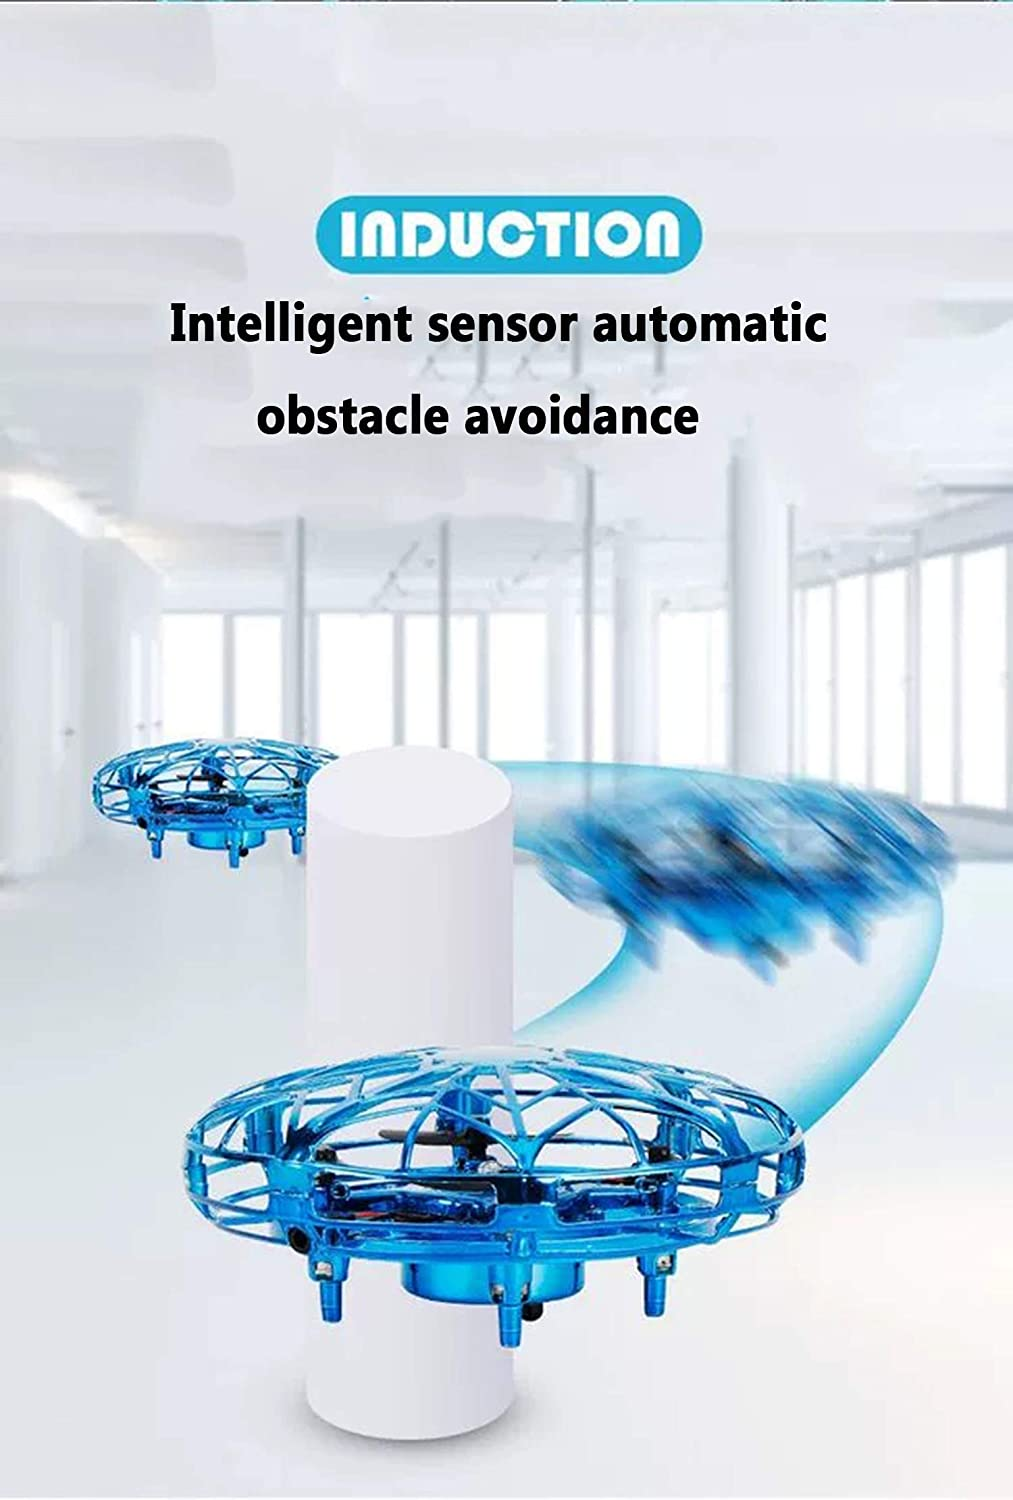 Easy Play Indoor UFO Drone for Boys Girls. Mini Drone for Kids or Adults,Hand Operated Drones Motion Sensor Small Flying Ball Toy for Kids Gift,LED Lights